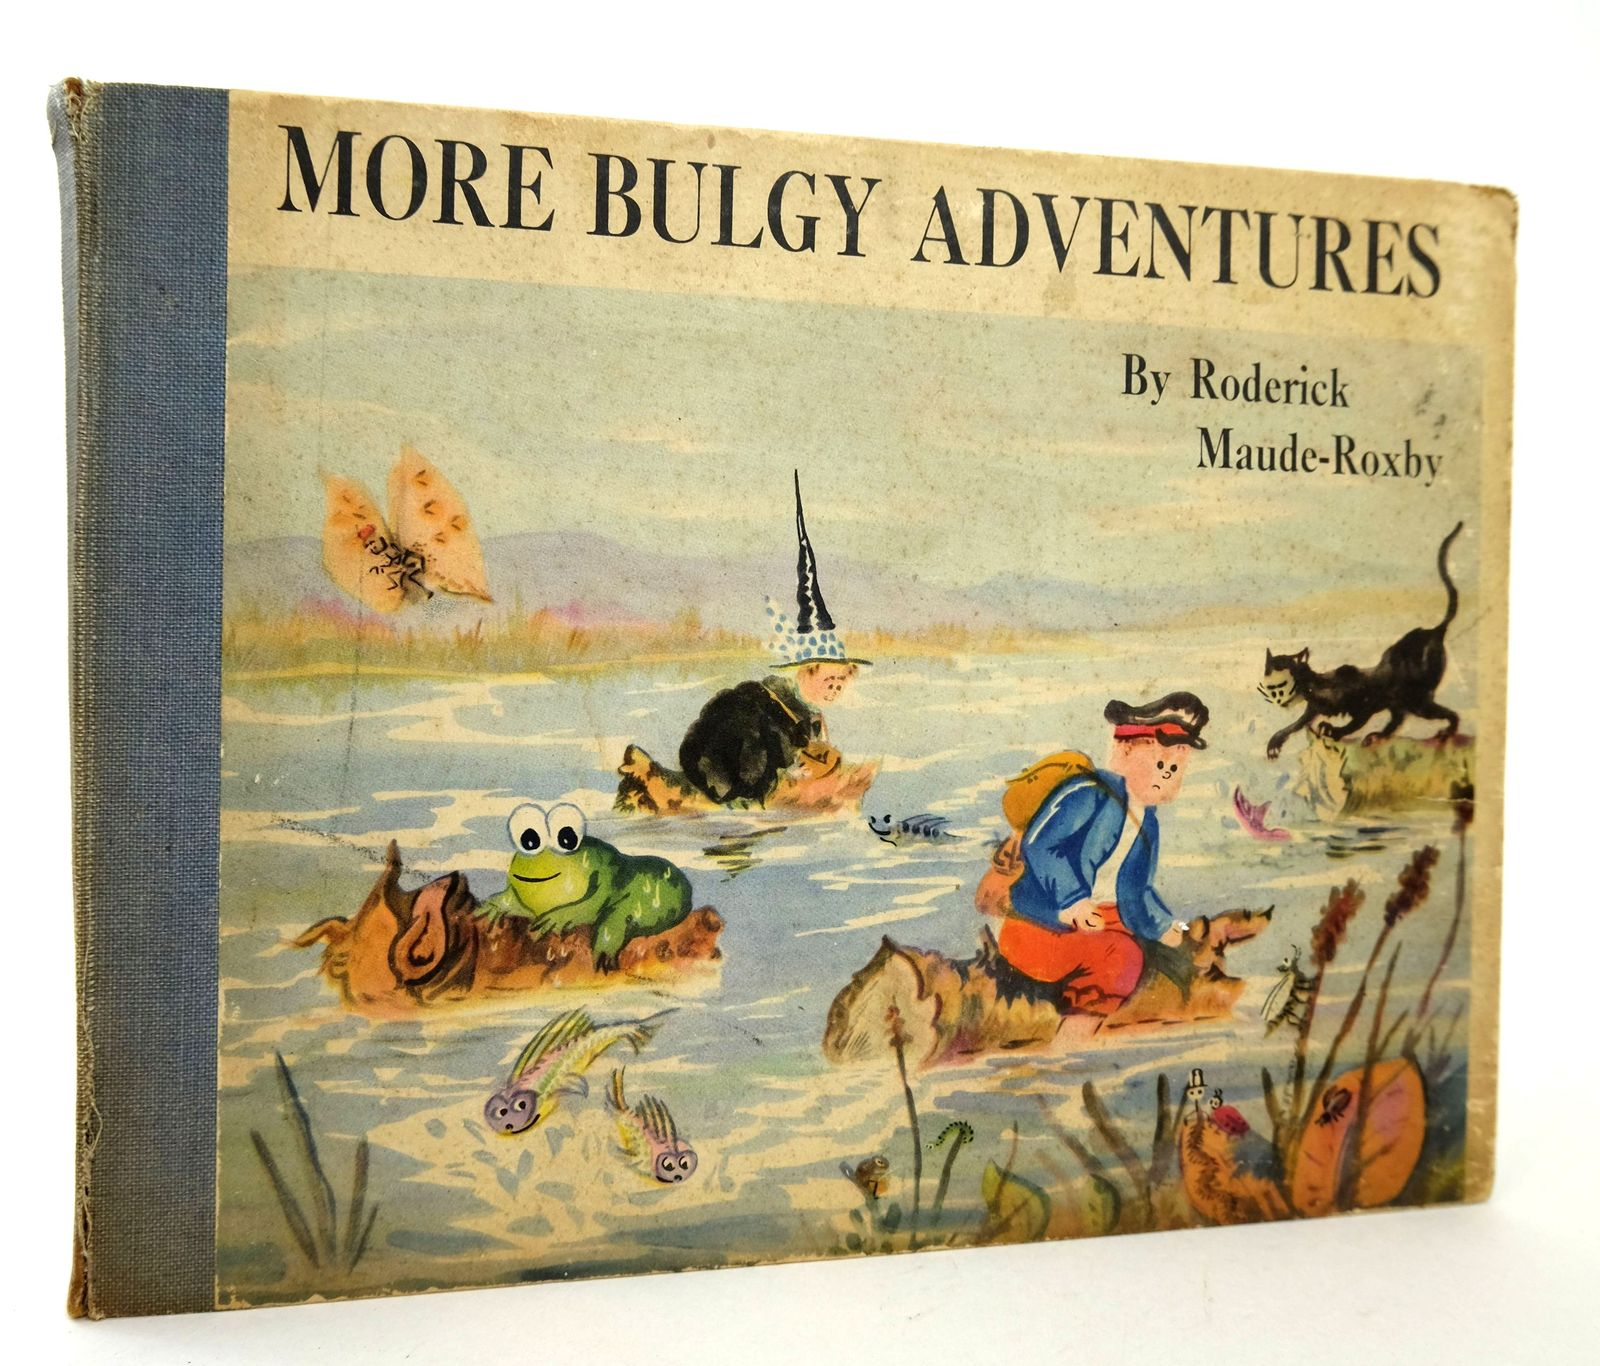 Photo of MORE BULGY ADVENTURES written by Maude-Roxby, Roderick illustrated by Maude-Roxby, Roderick published by H.F. & G. Witherby Ltd. (STOCK CODE: 1818776)  for sale by Stella & Rose's Books